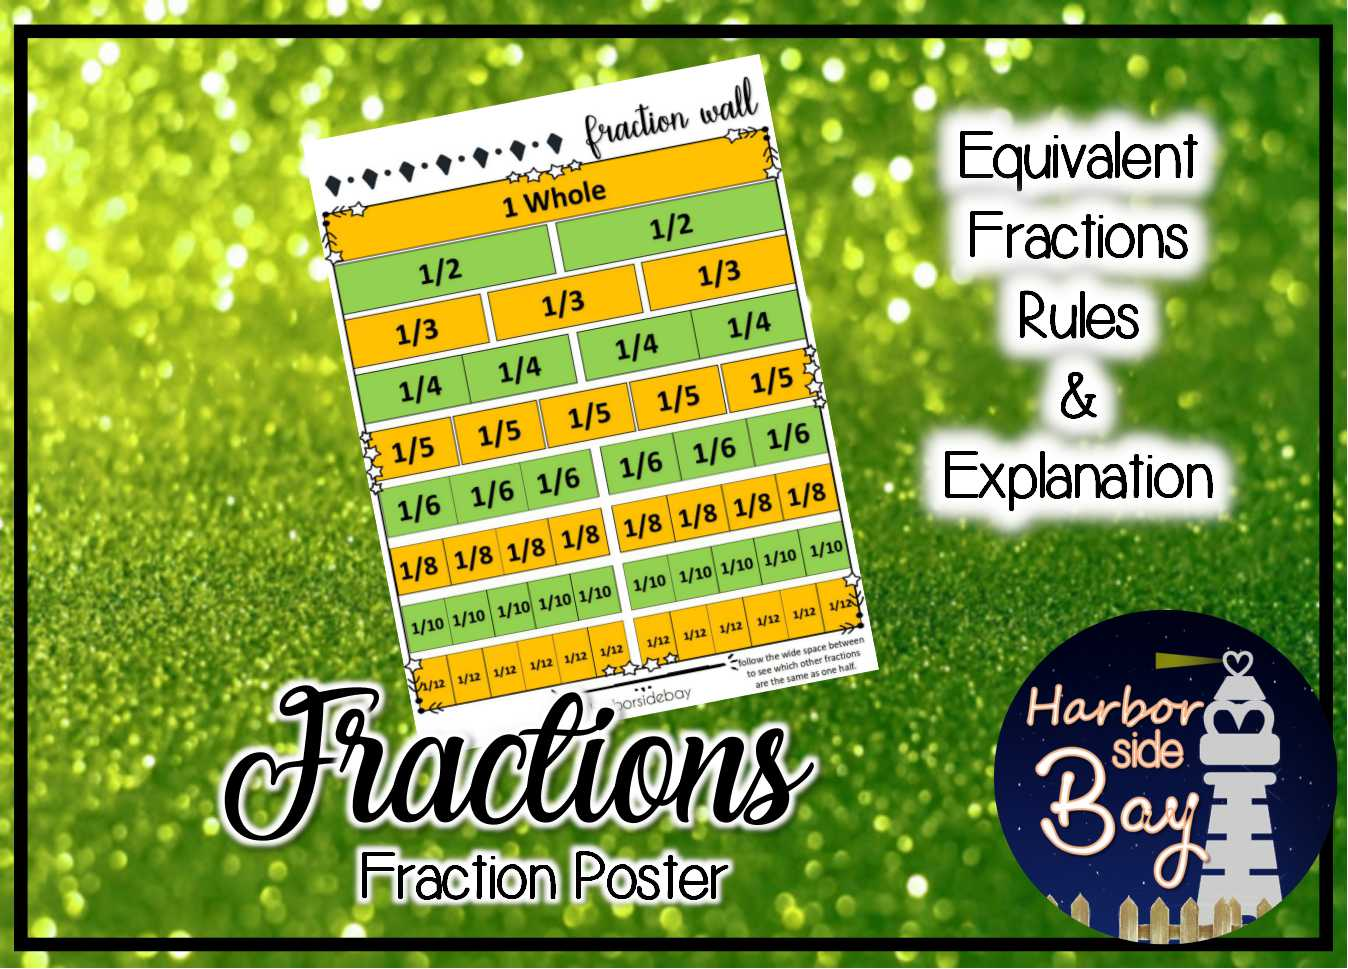 Fraction Wall Equivalent Fractions